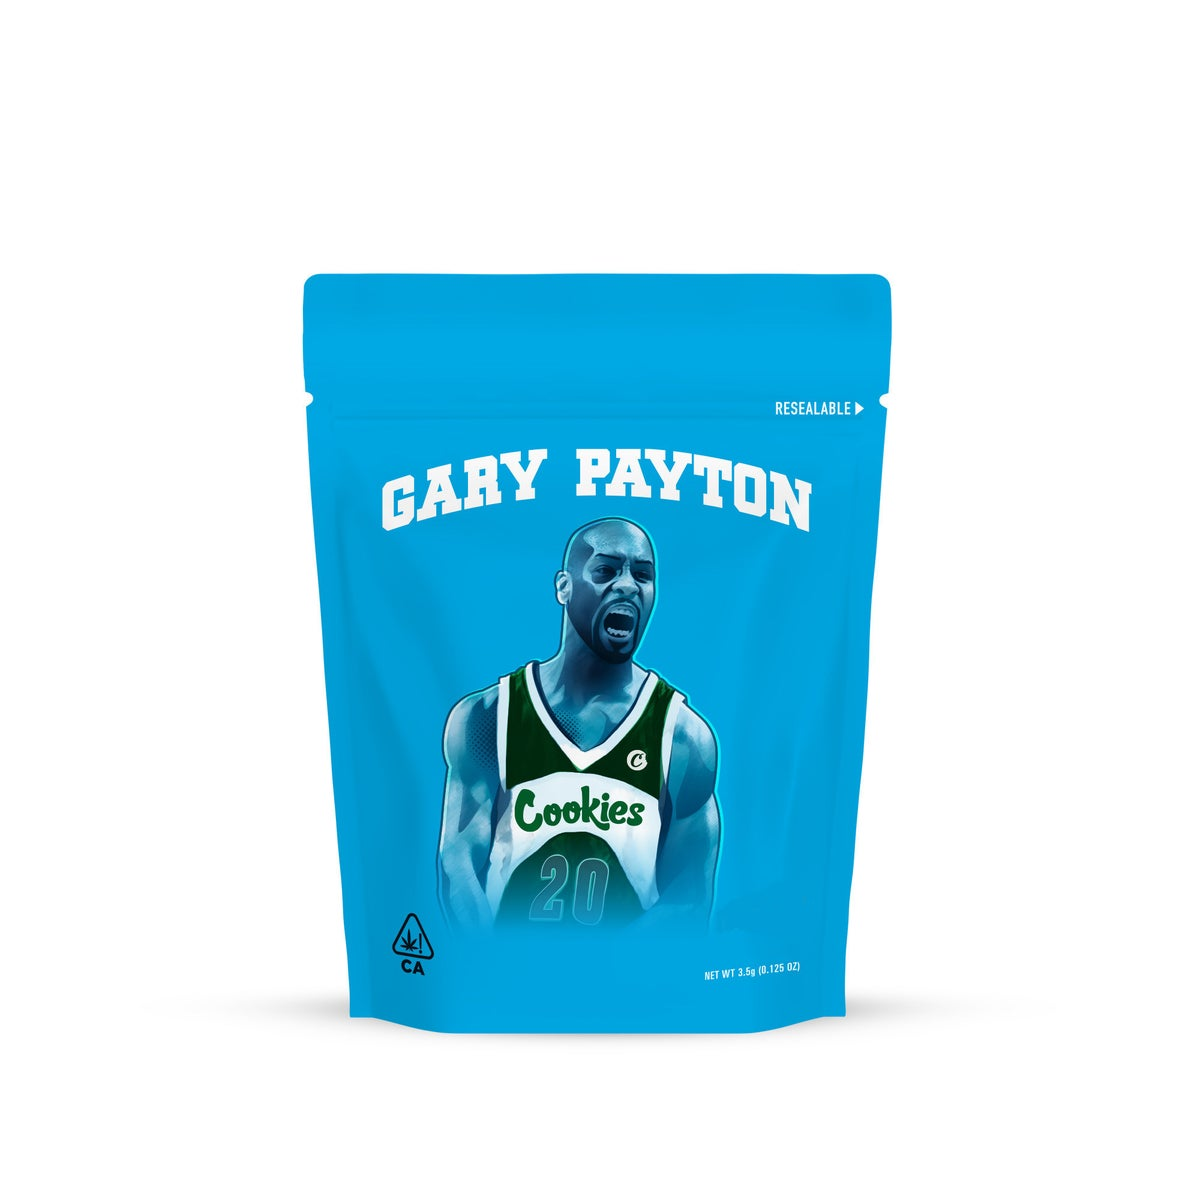 Image of Gary Payton Cookies Bags Empty 3.5 to 7g Size Smell Proof Mylar Bags